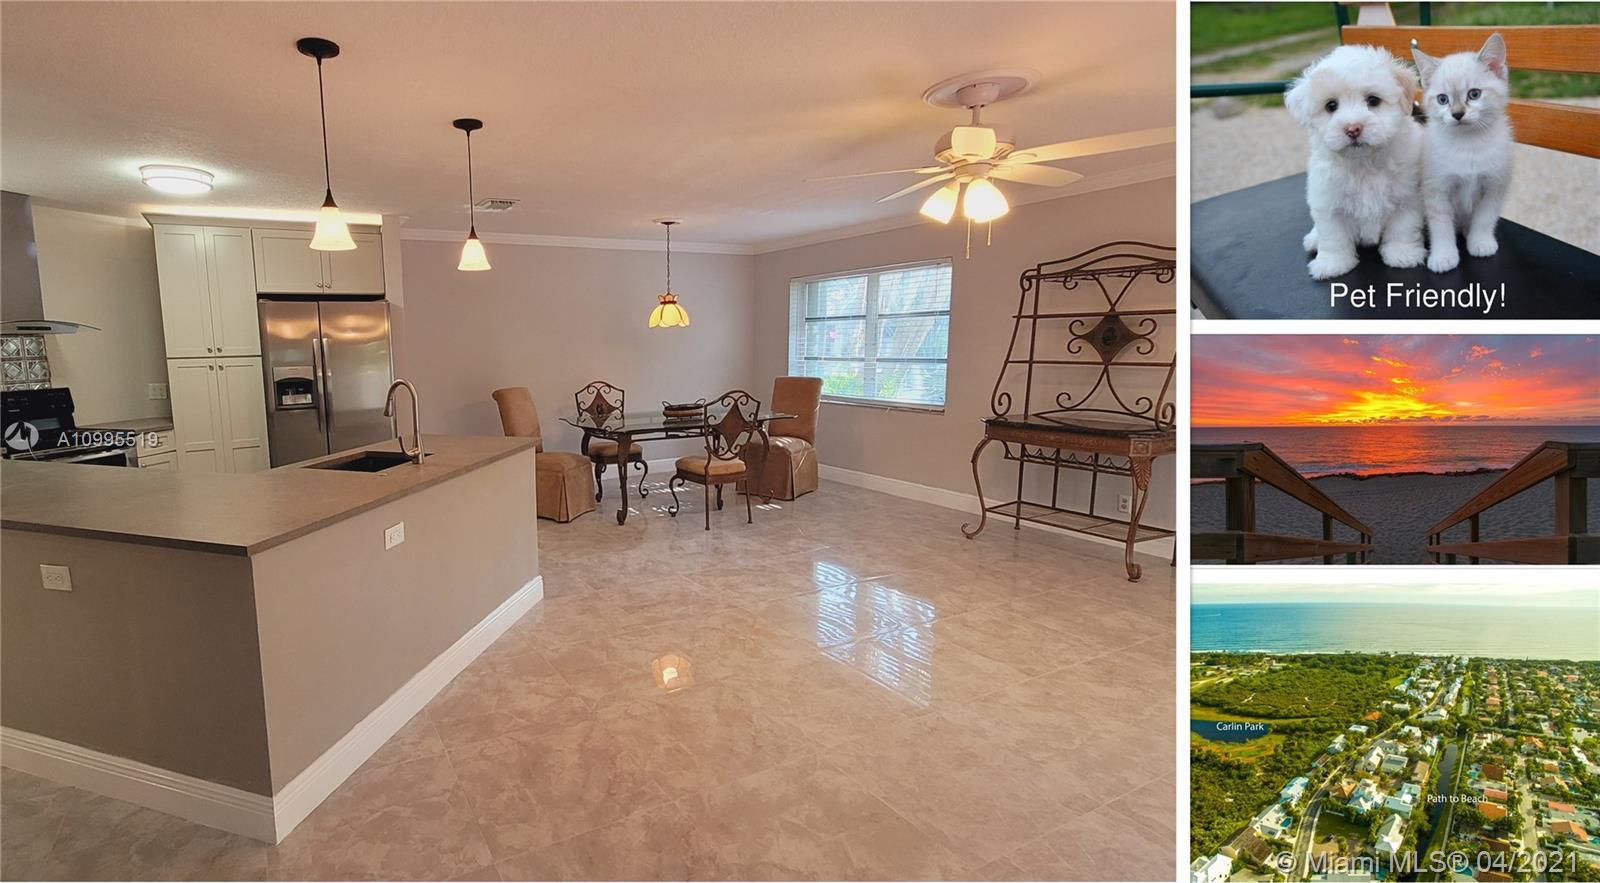 New tile was just installed downstairs on 4/10.    Rare Pet Friendly Community and beach.  2 Bedroom